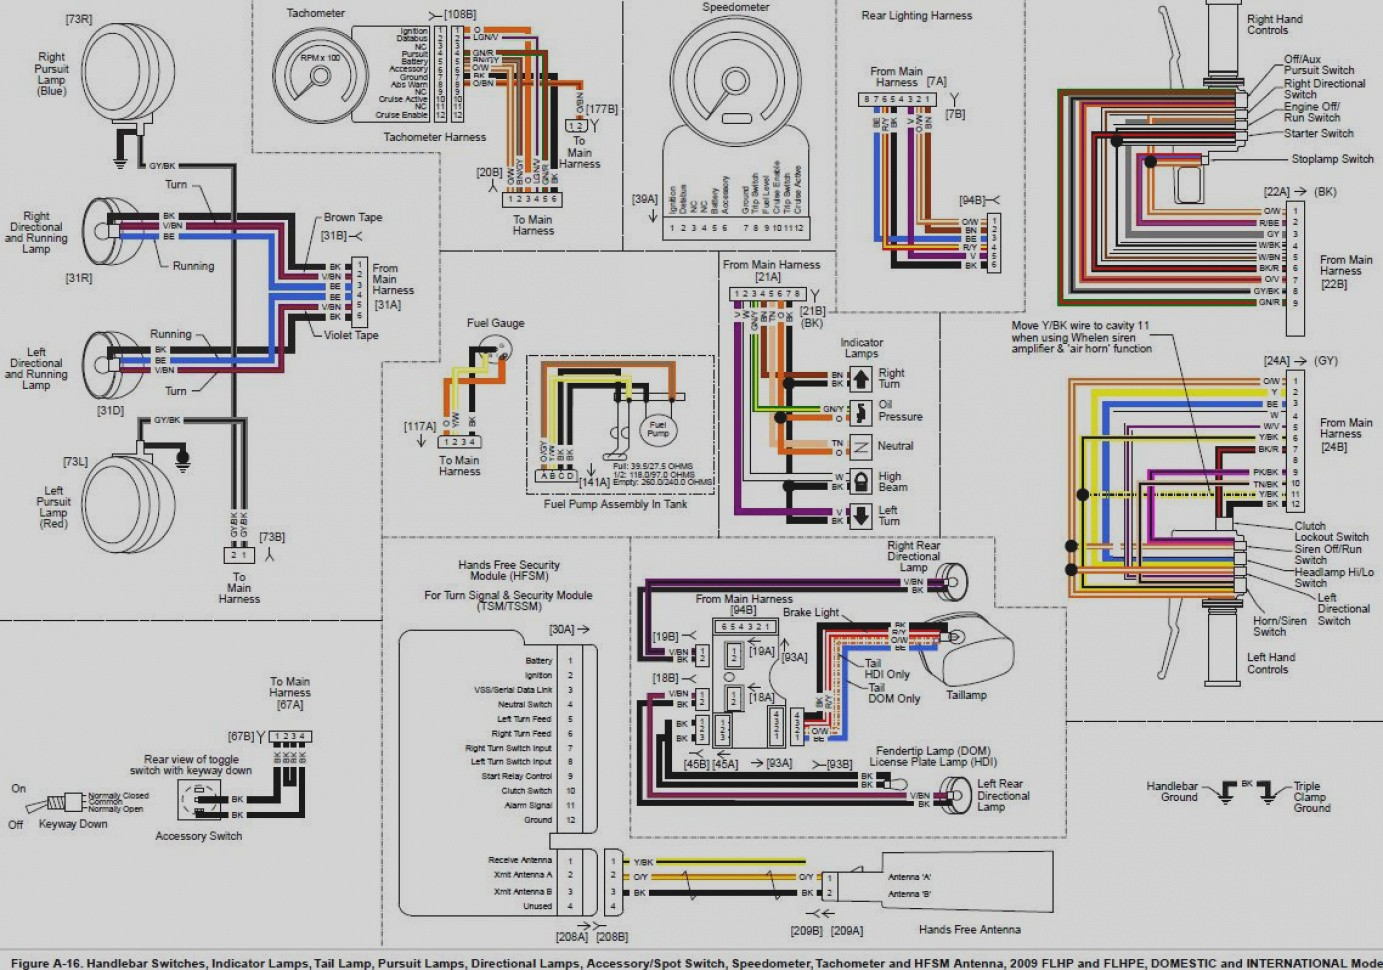 Harley Davidson Dyna Super Glide Wiring Diagram on 1999 softail wiring diagrams, harley custom wiring diagrams, dyna shift minder wiring diagrams,